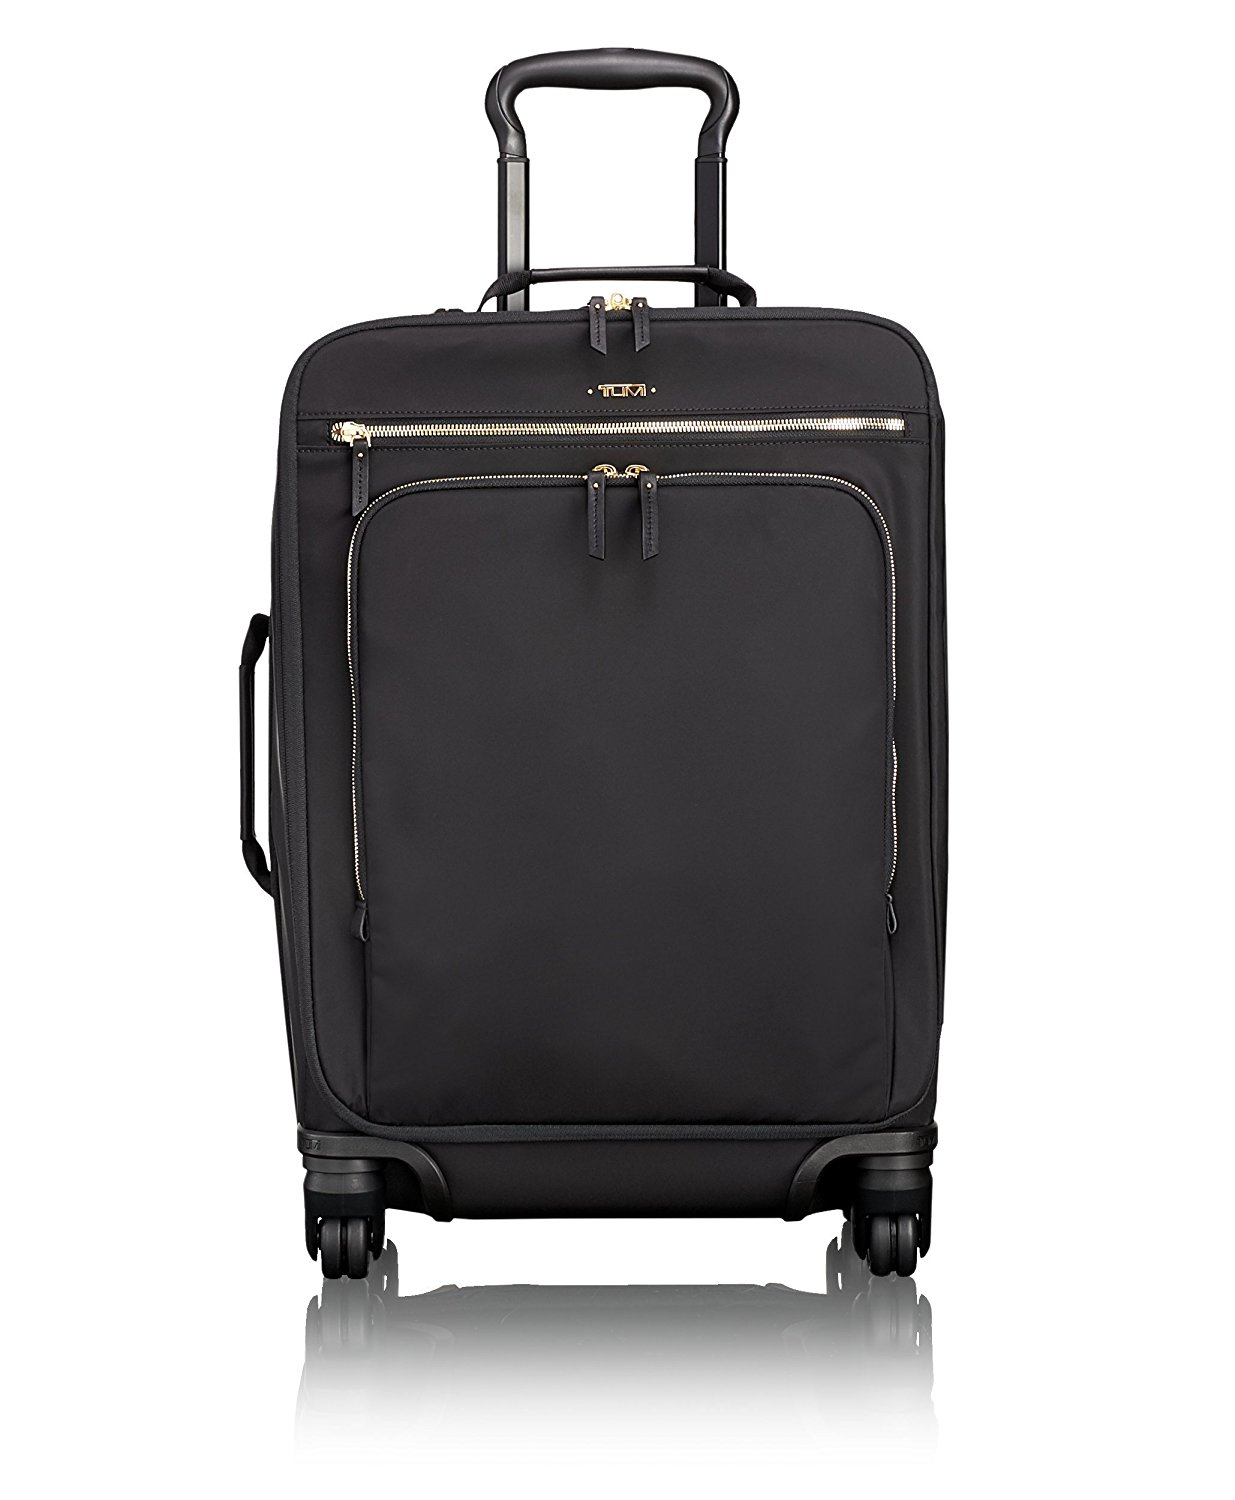 Tumi Voyageur, Super Léger Internationales Handgepäck, 46 cm, 44 L, Black, 0484670D